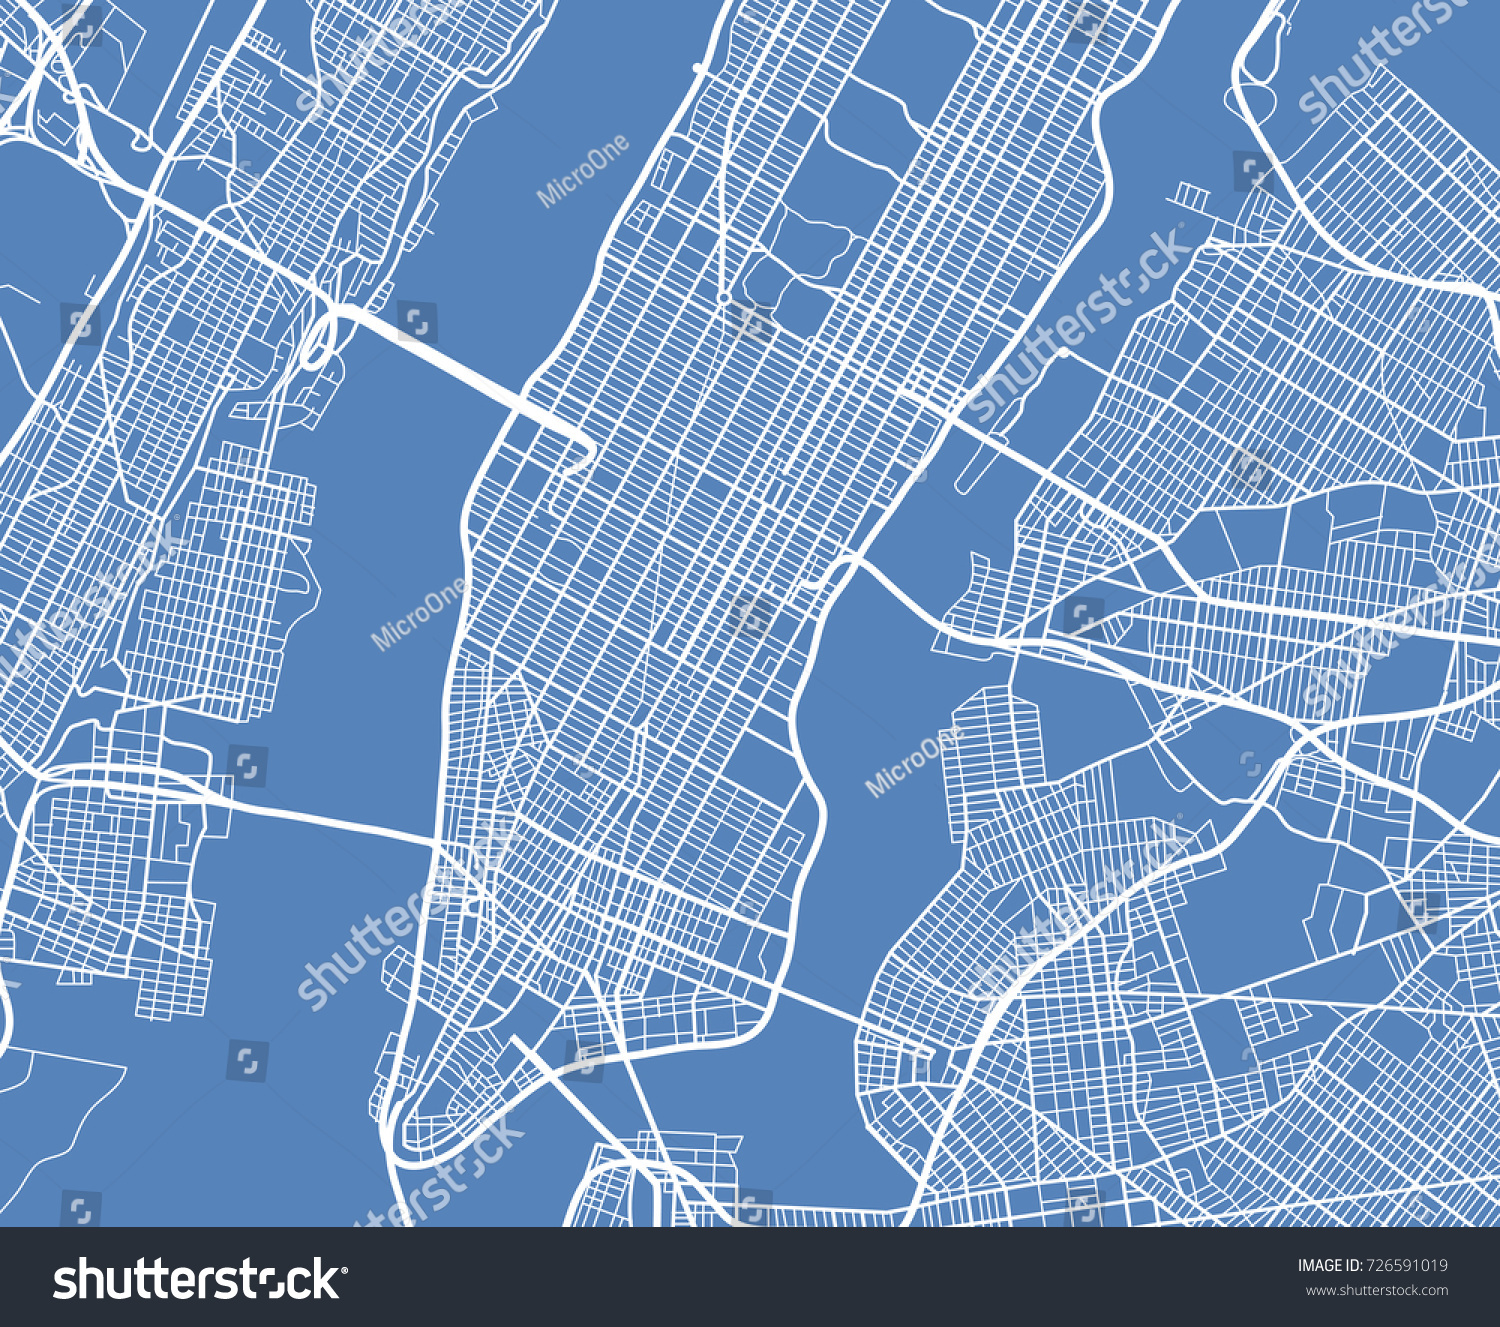 Aerial View Usa New York City Stock Vector Royalty Free 726591019